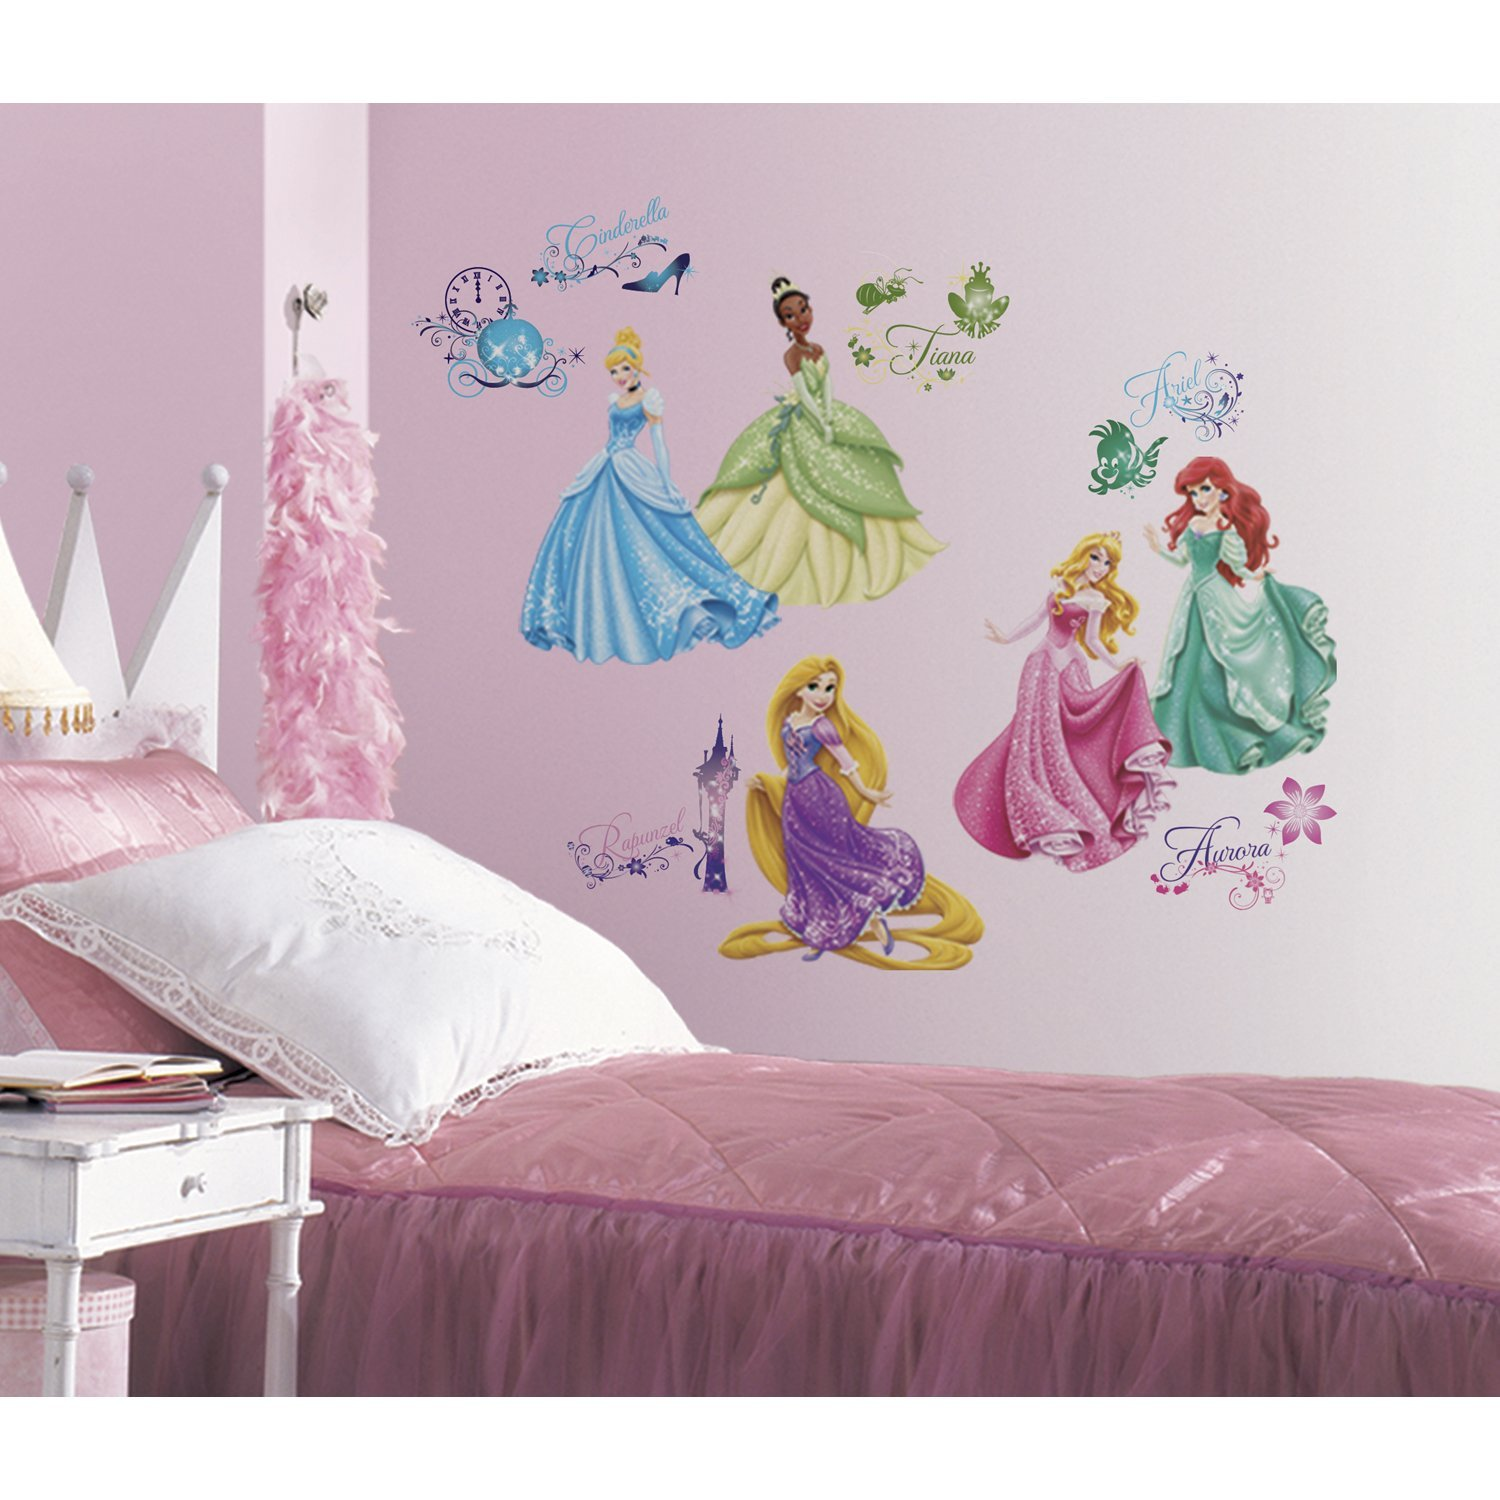 disney-princess-decals-wall.jpg